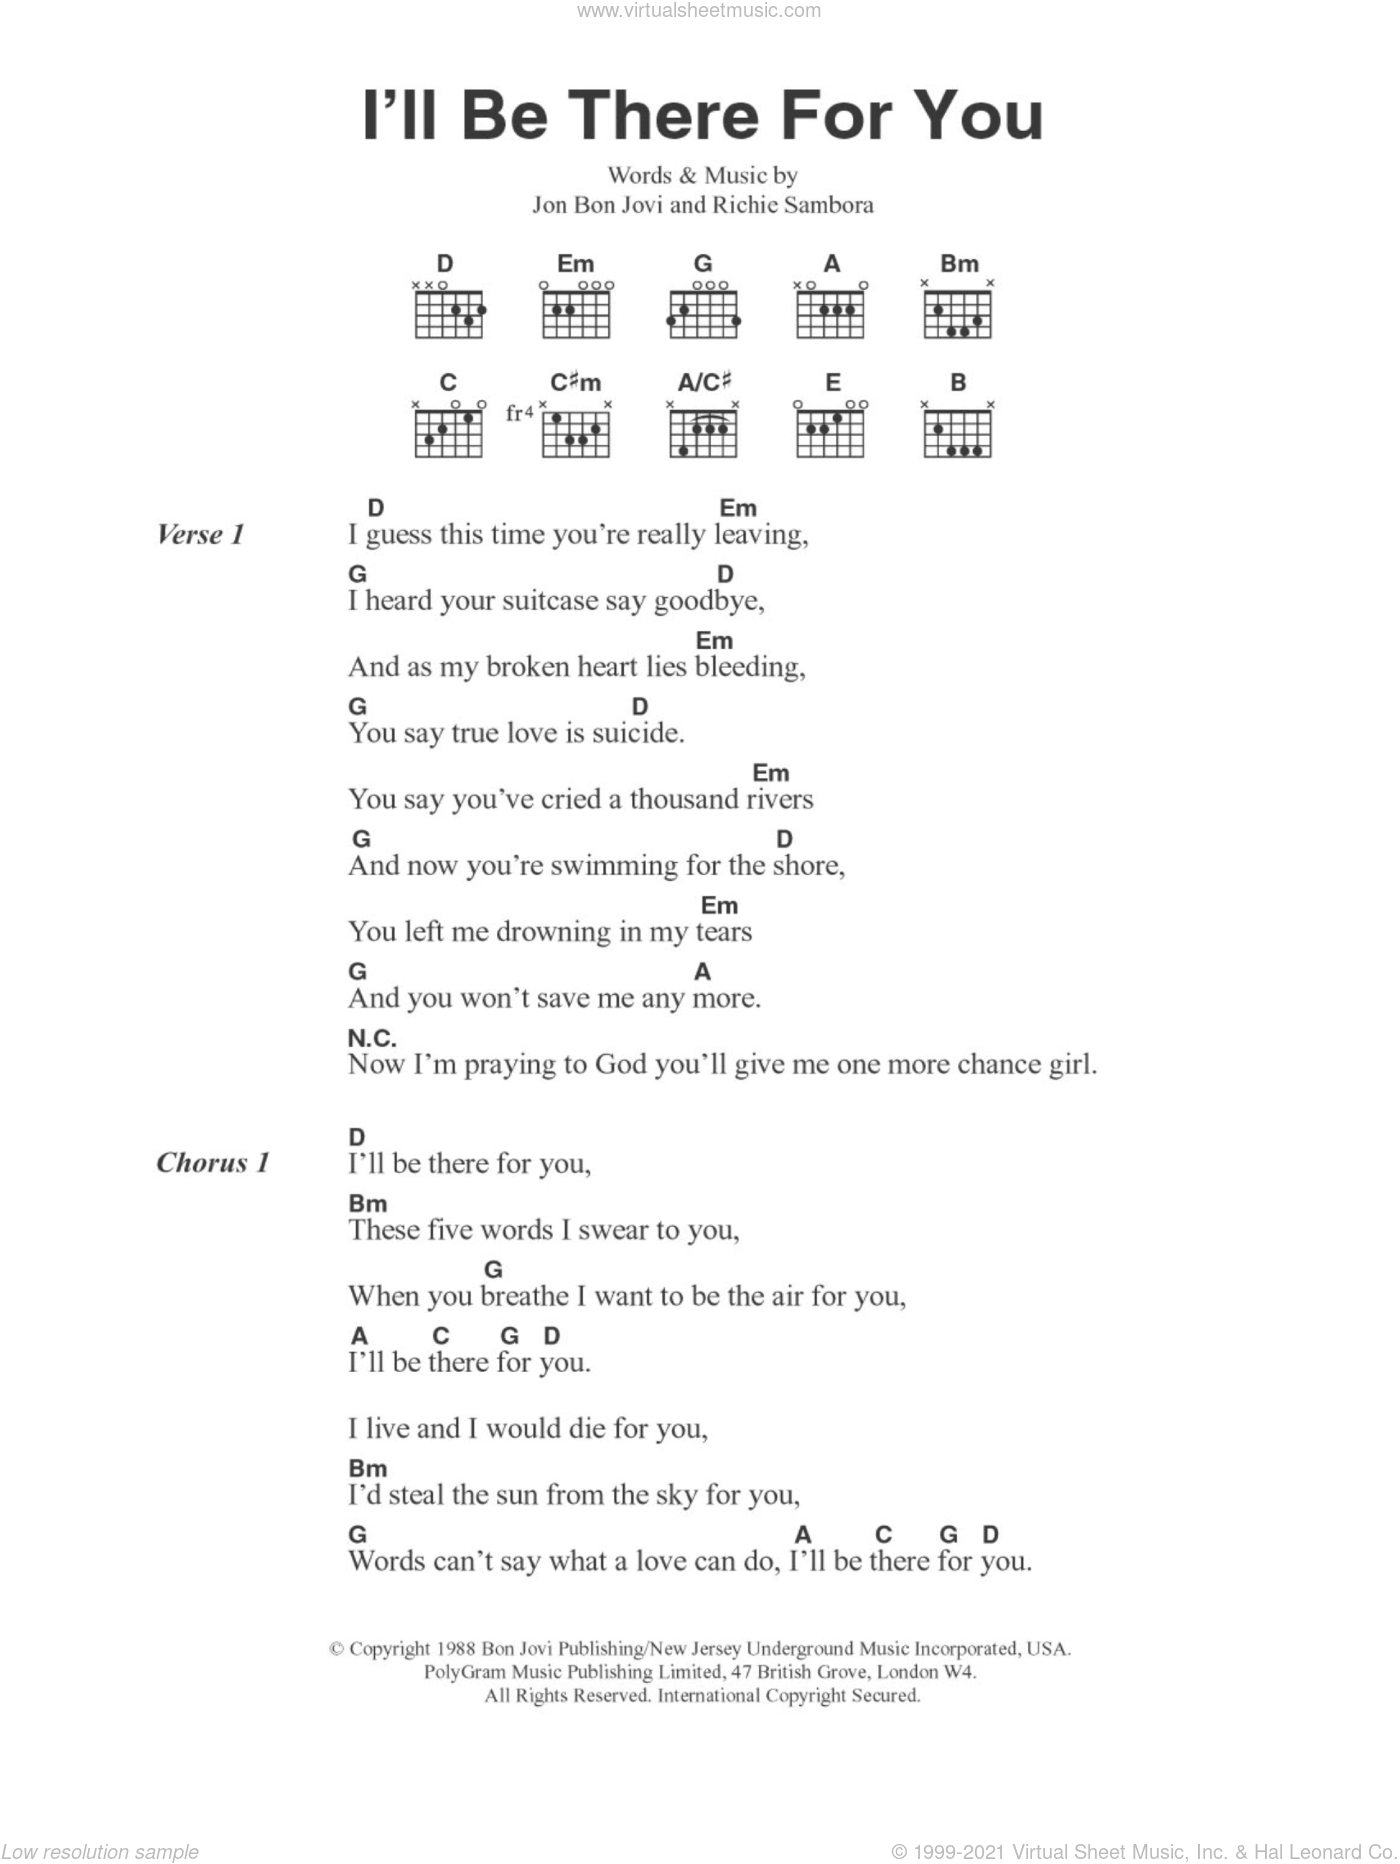 I'll Be There For You sheet music for guitar (chords) by Richie Sambora and Bon Jovi. Score Image Preview.